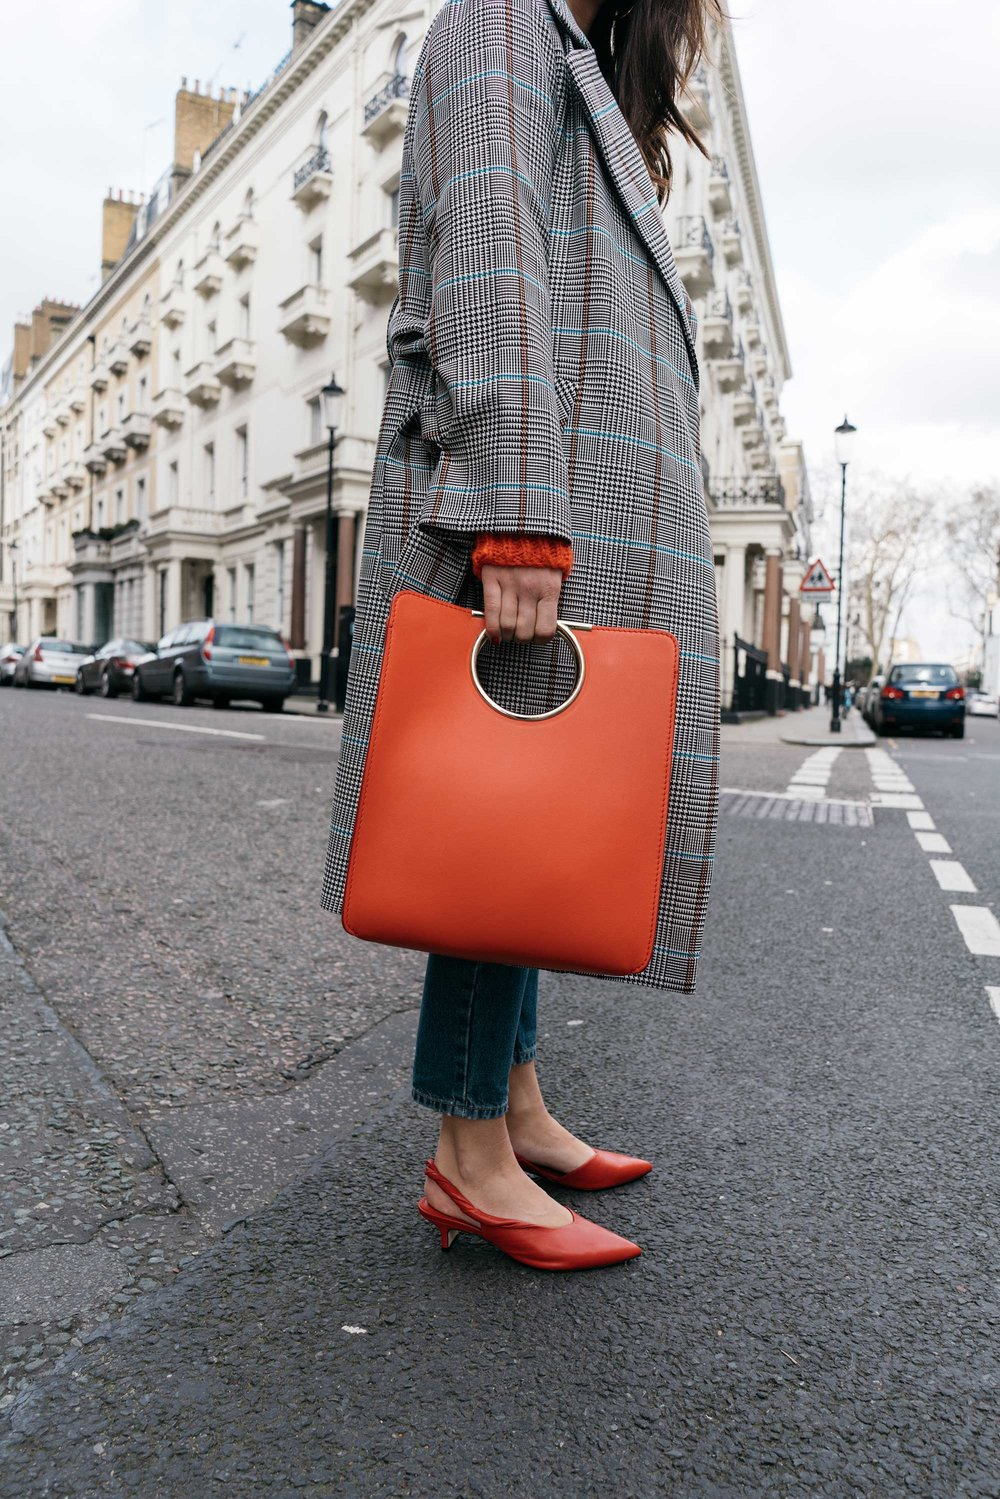 Lightweight-Check-Coat,-Salvatore-Ferragamo-Red-Leather-Tote,--Mom-jeans,-London-Fall-Outfit-Red-Accessories-10.jpg